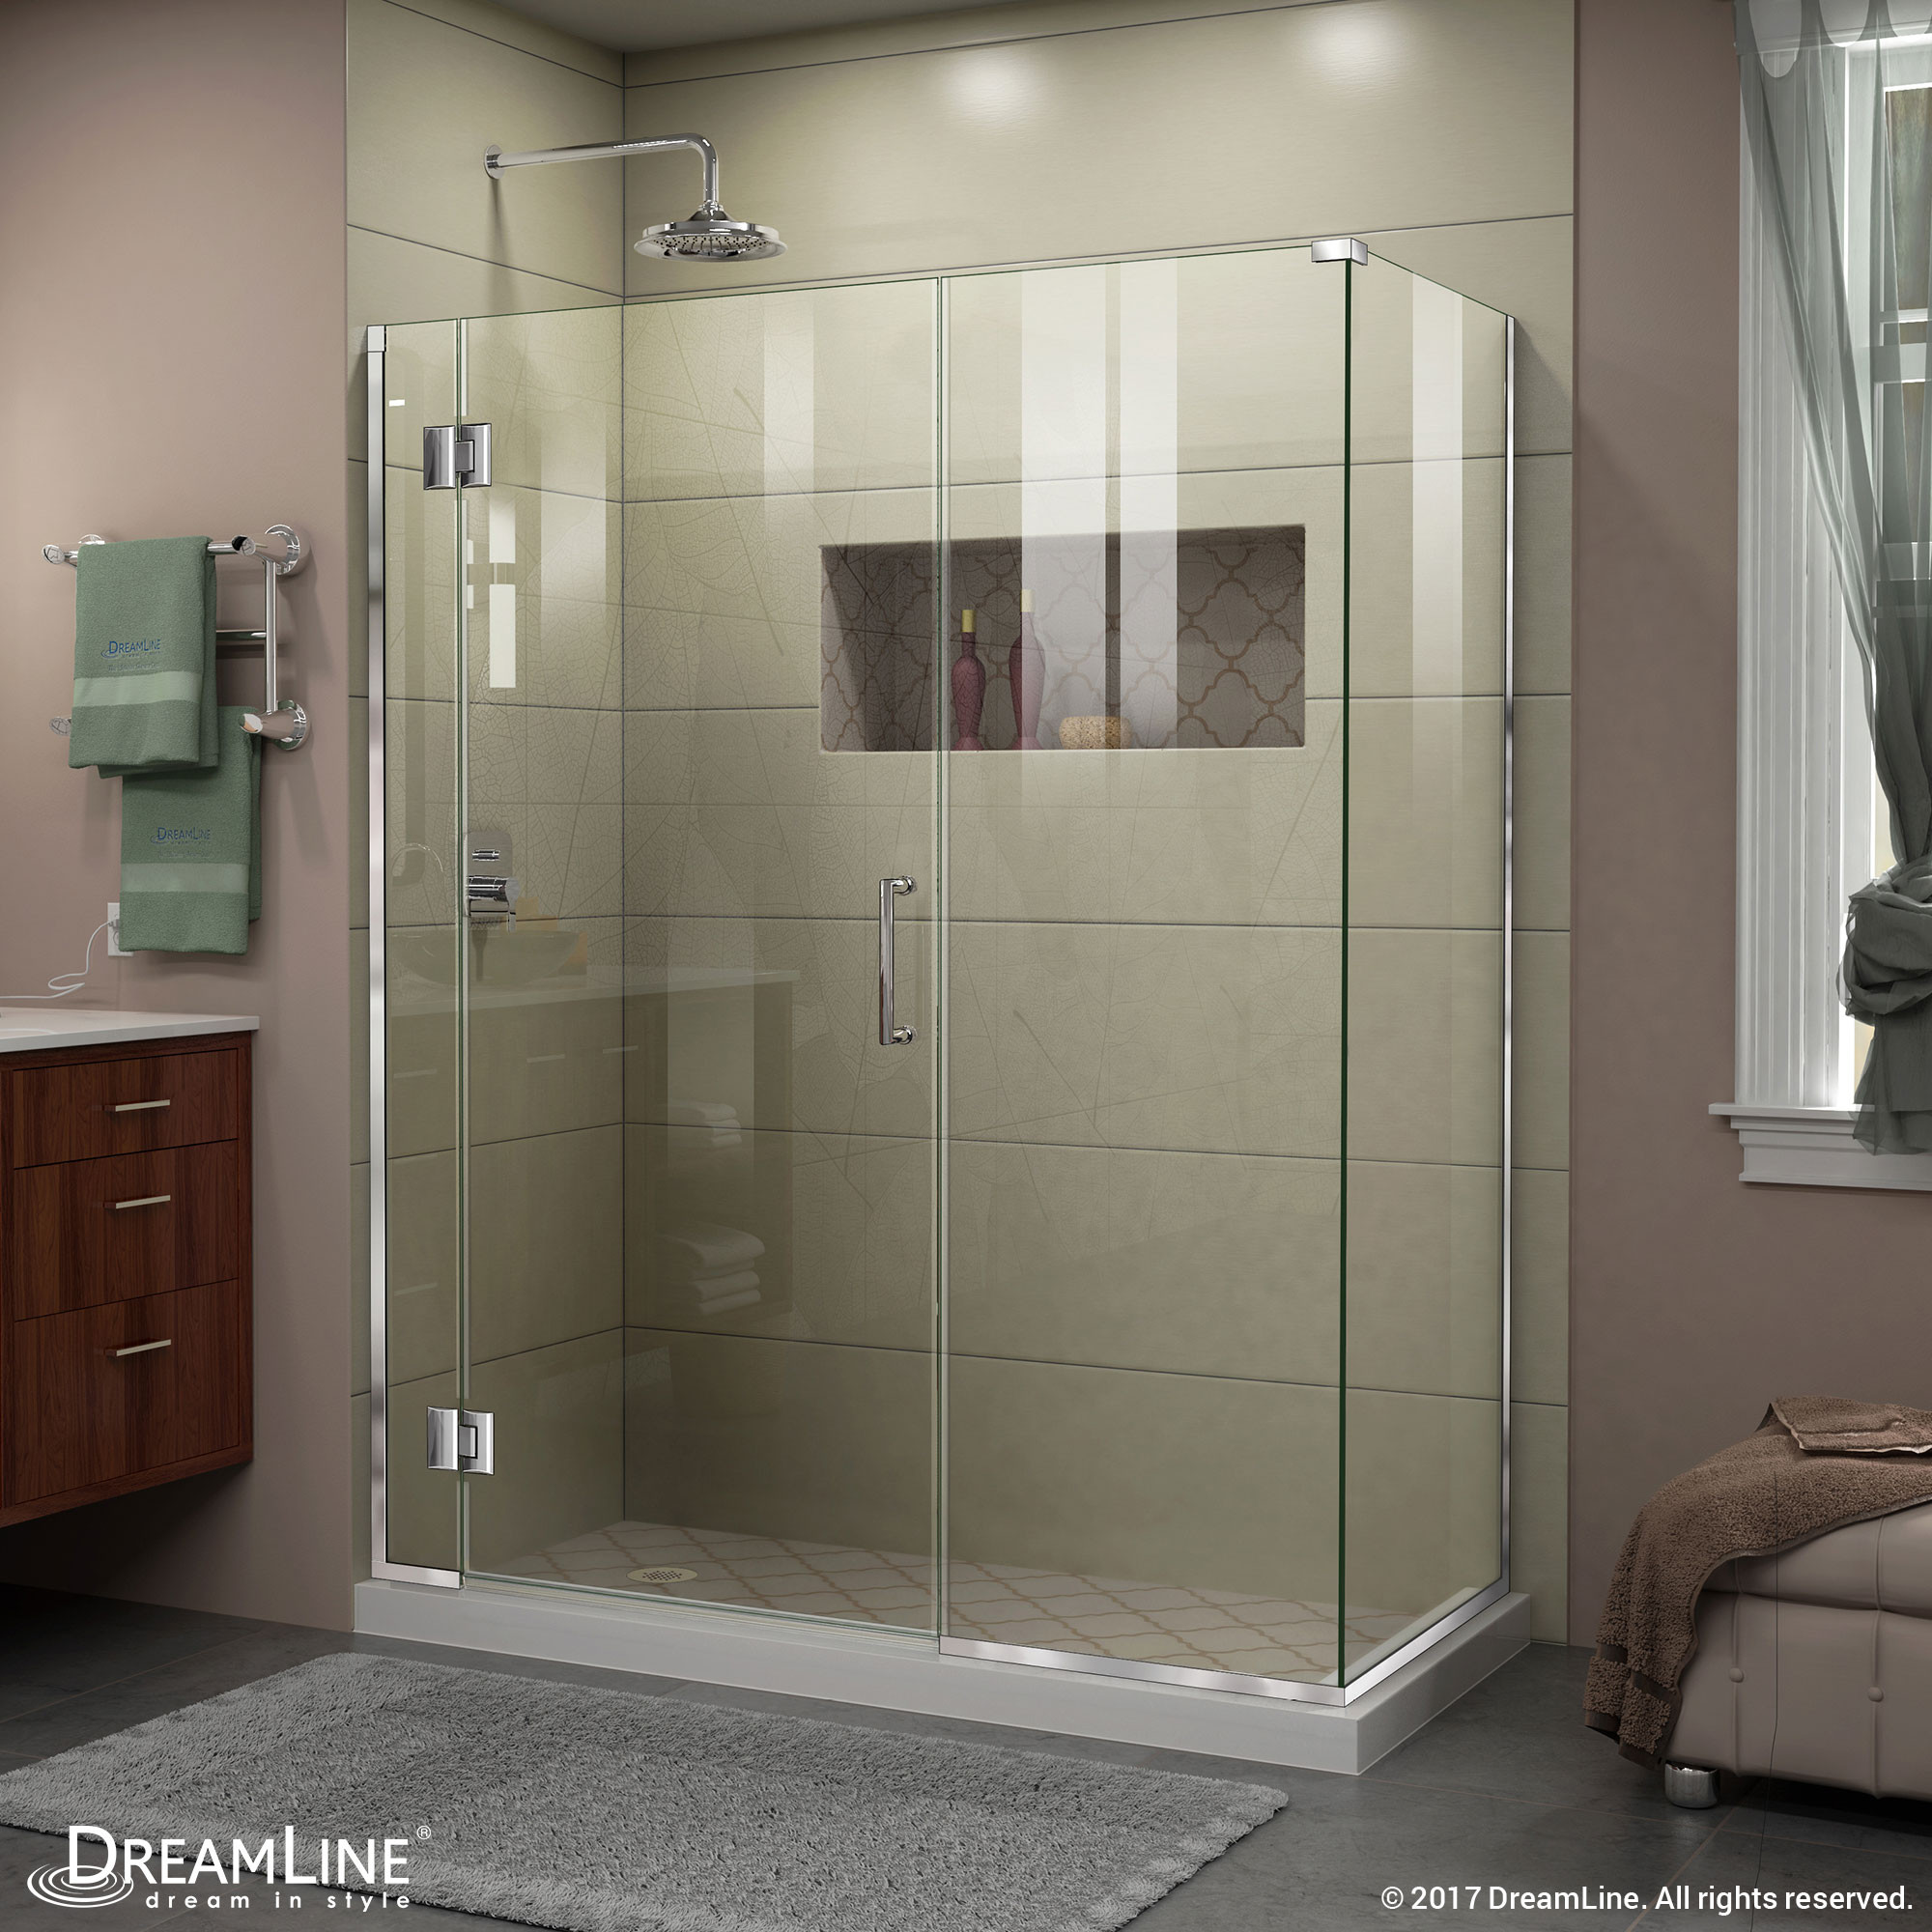 DreamLine E13022530-01 Unidoor-X Hinged Shower Enclosure In Chrome Finish